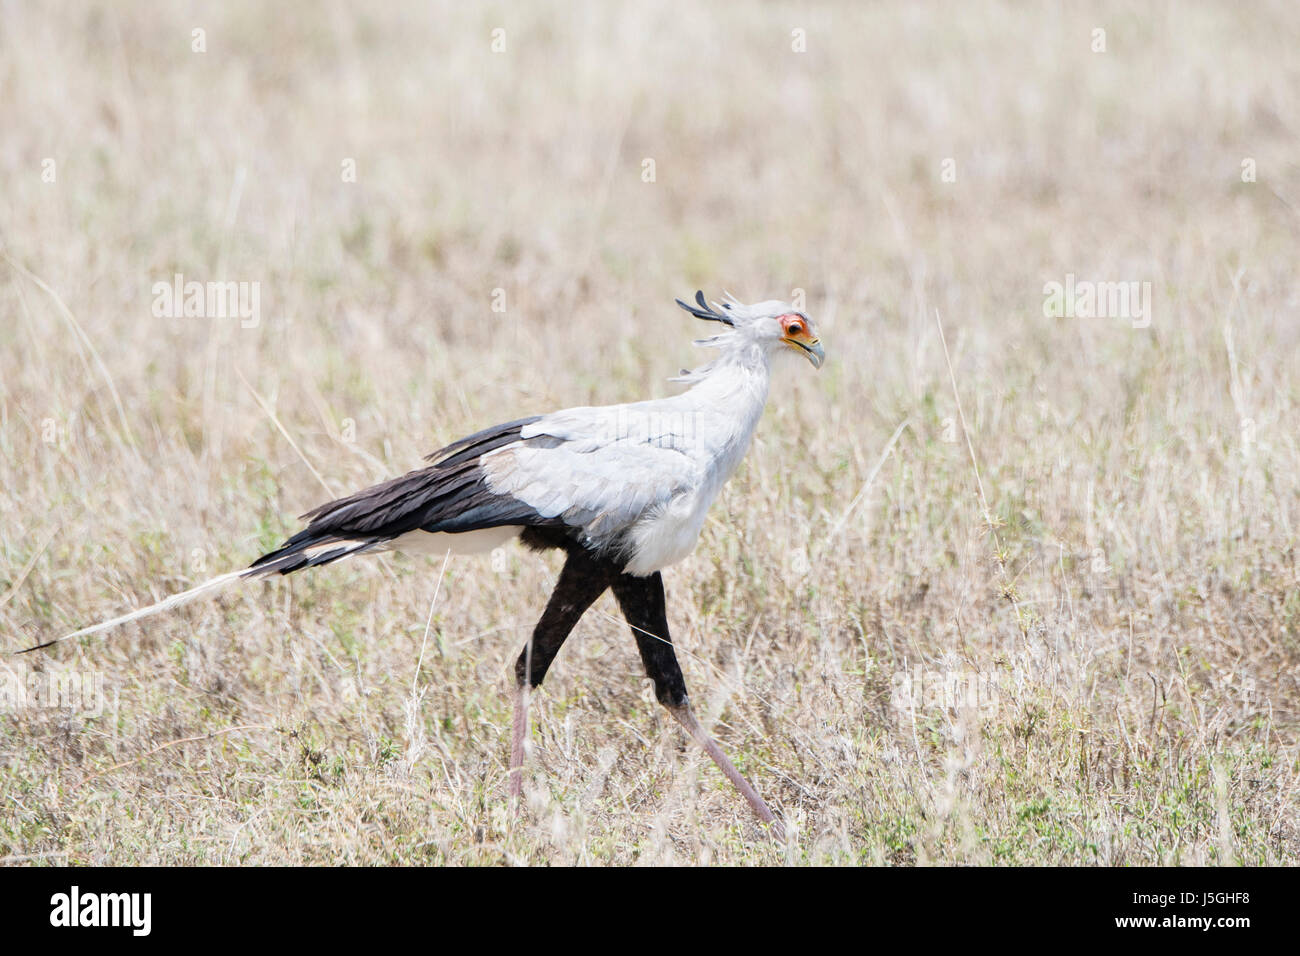 Secretary Bird (Sagittarius serpentarius) on the Plains of the Serengeti in Northern Tanzania Stock Photo